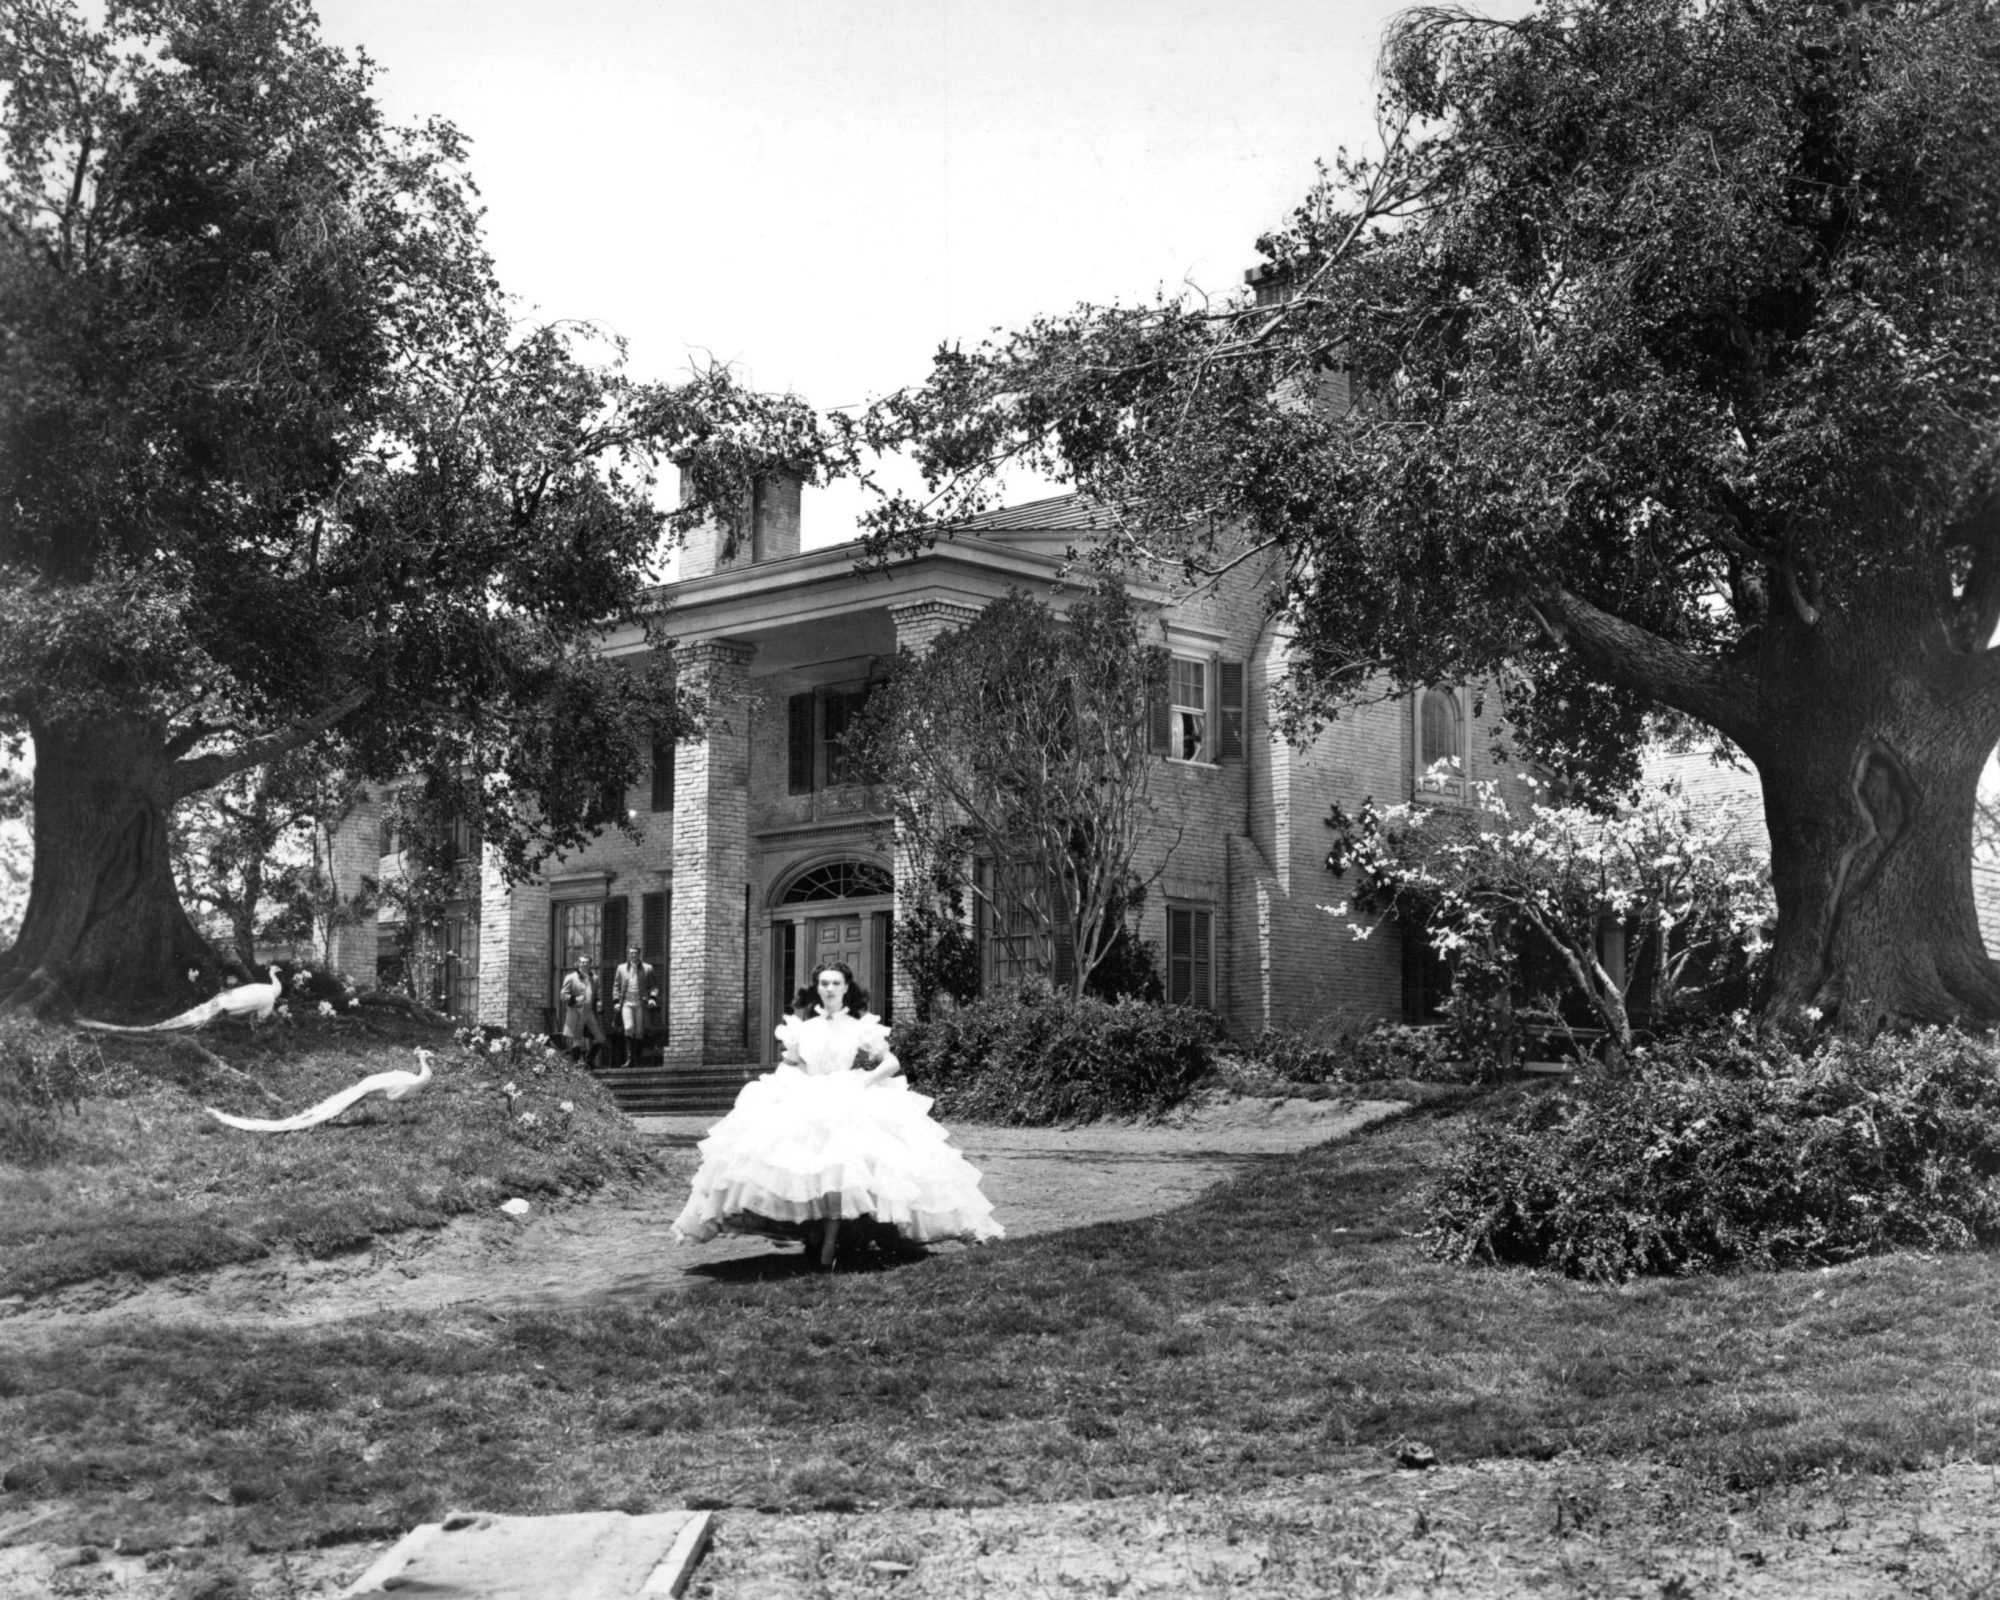 45. Celebrating Milestones: Gone With the Wind Turns 80